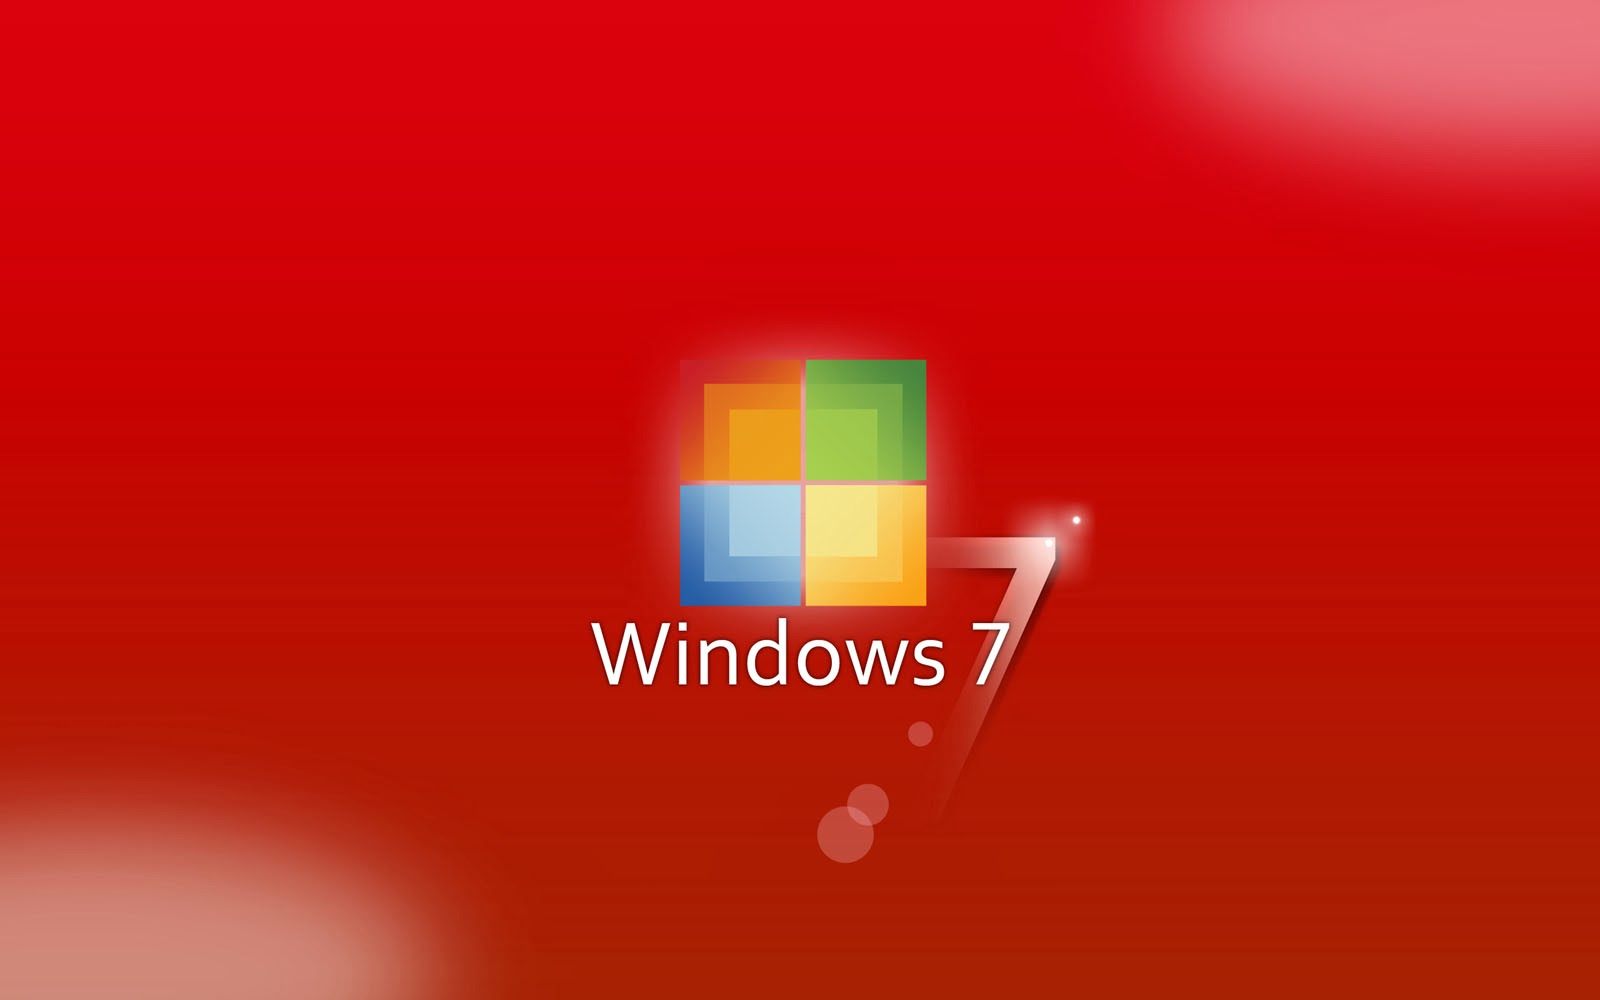 Wallpapers windows 7 red wallpapers for Windows windows windows